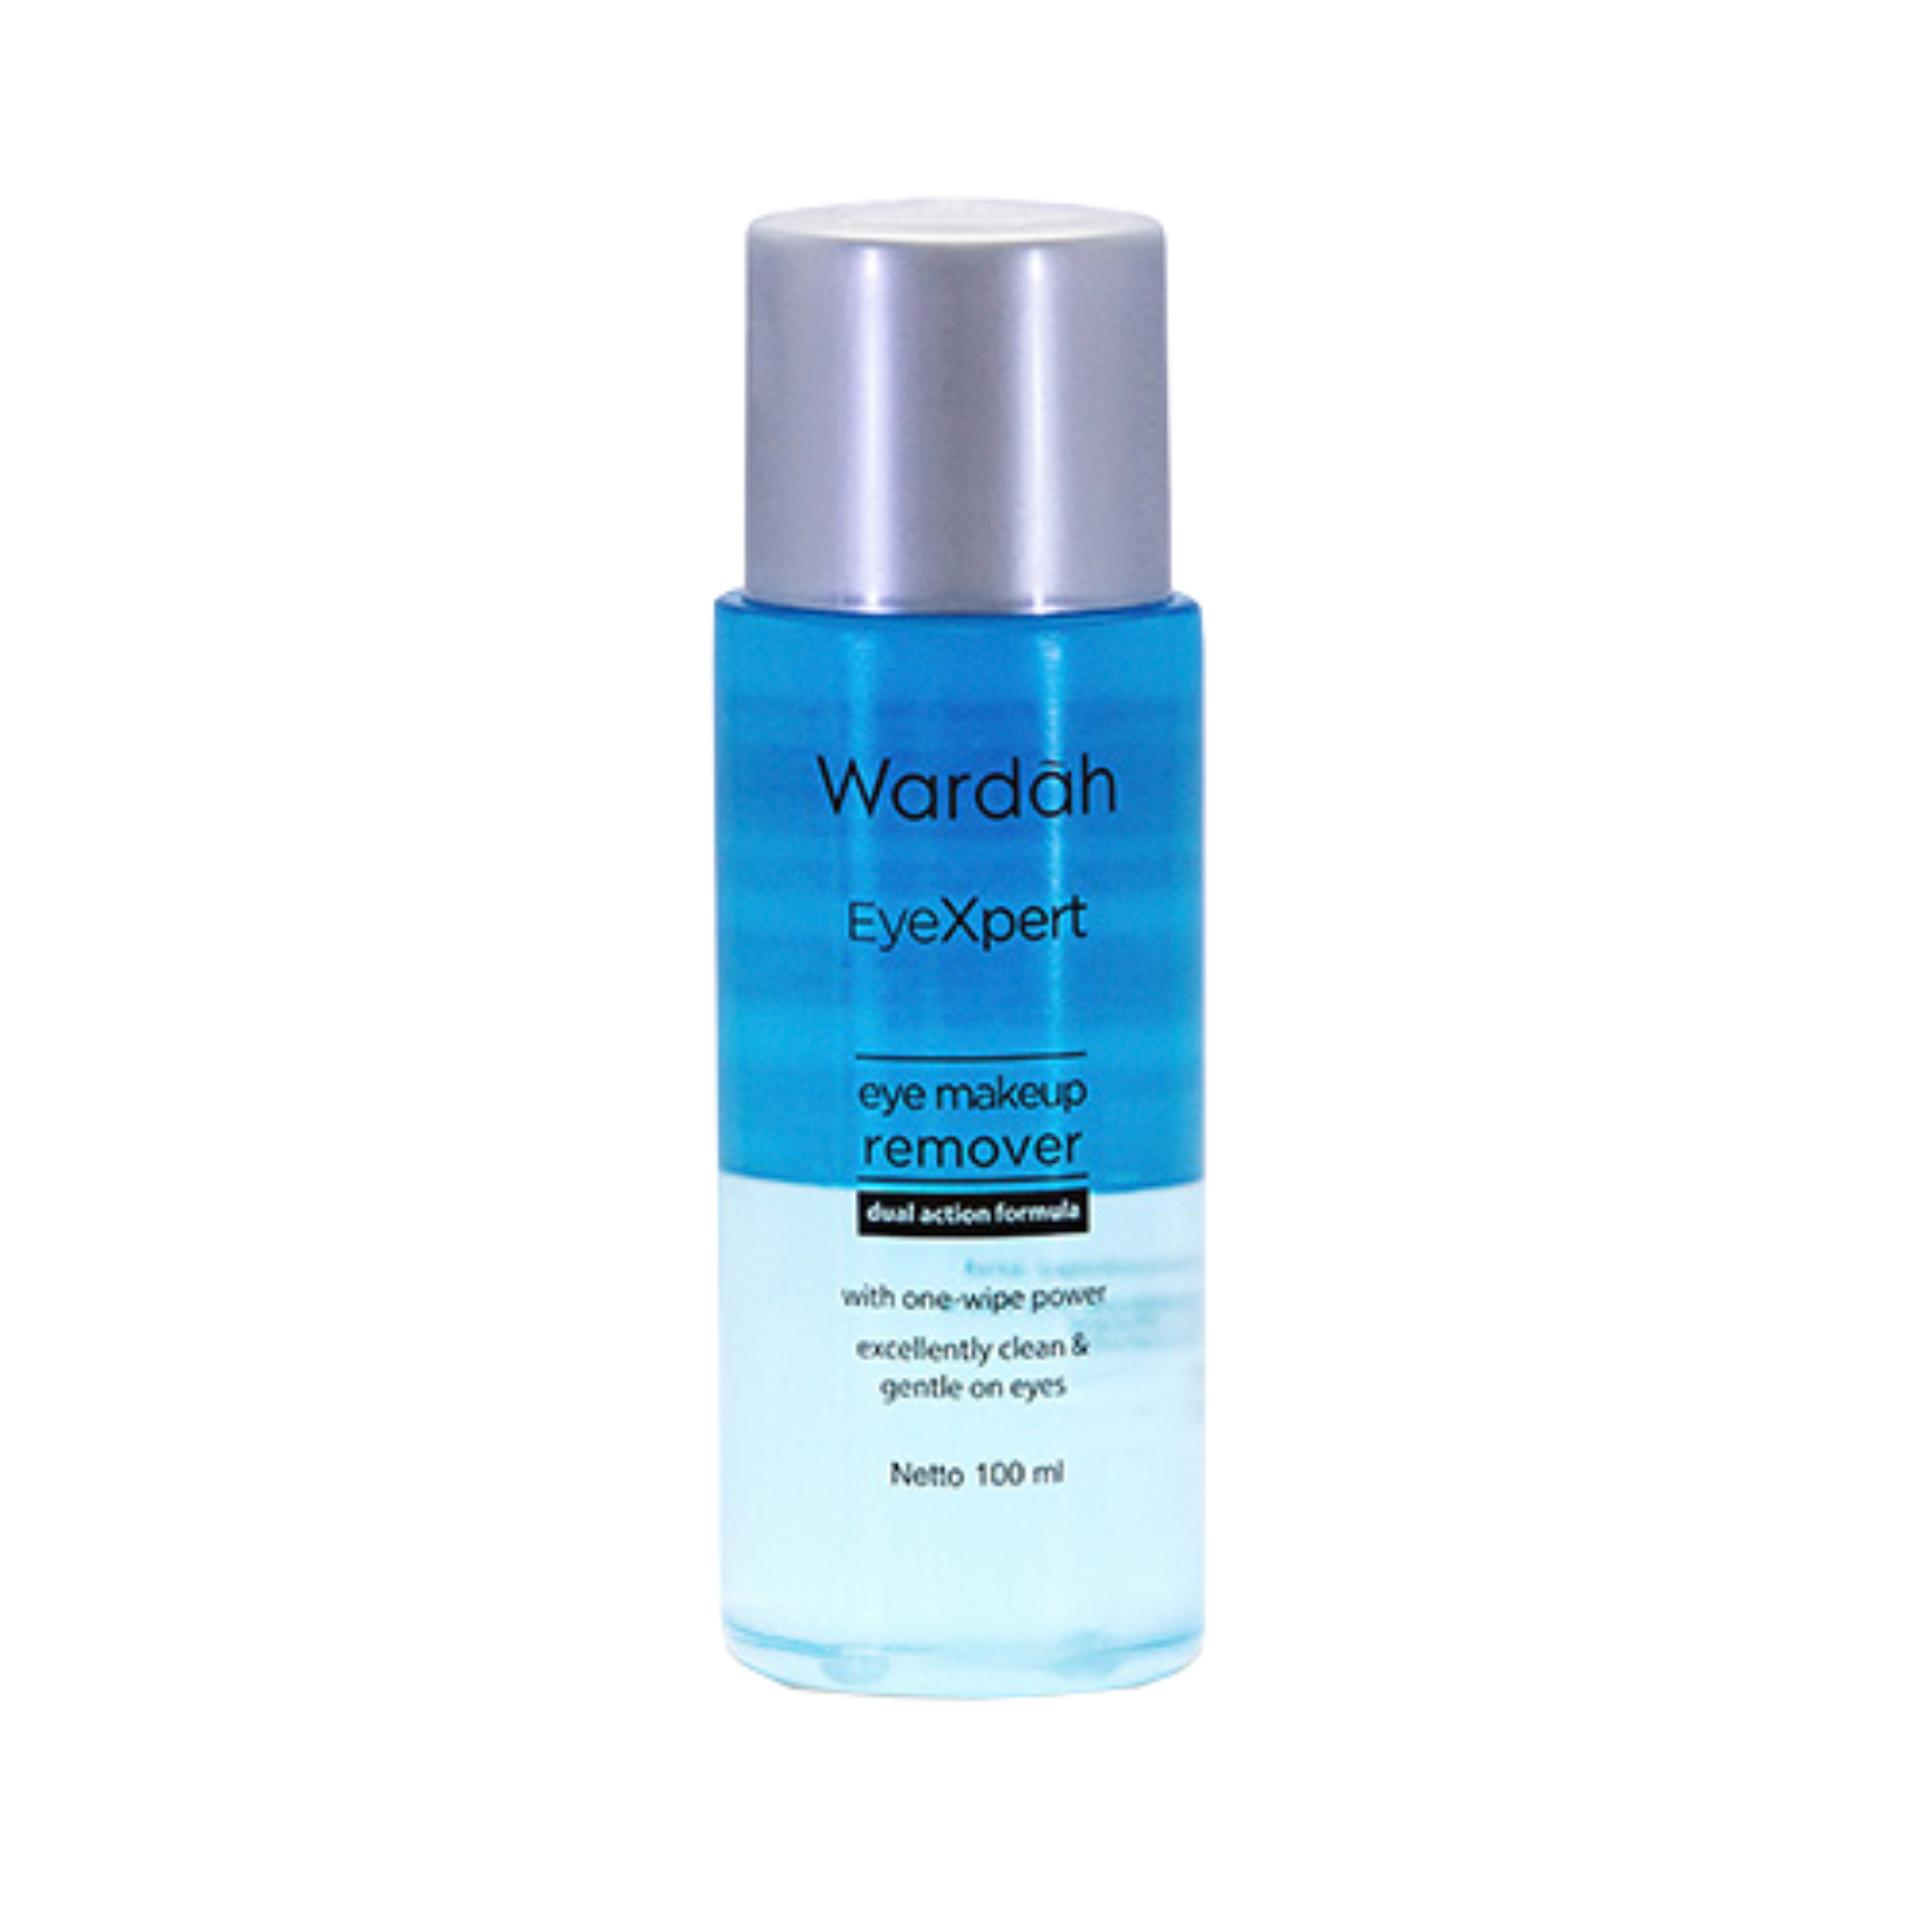 Wardah eyexpert eye make up remover 100ml